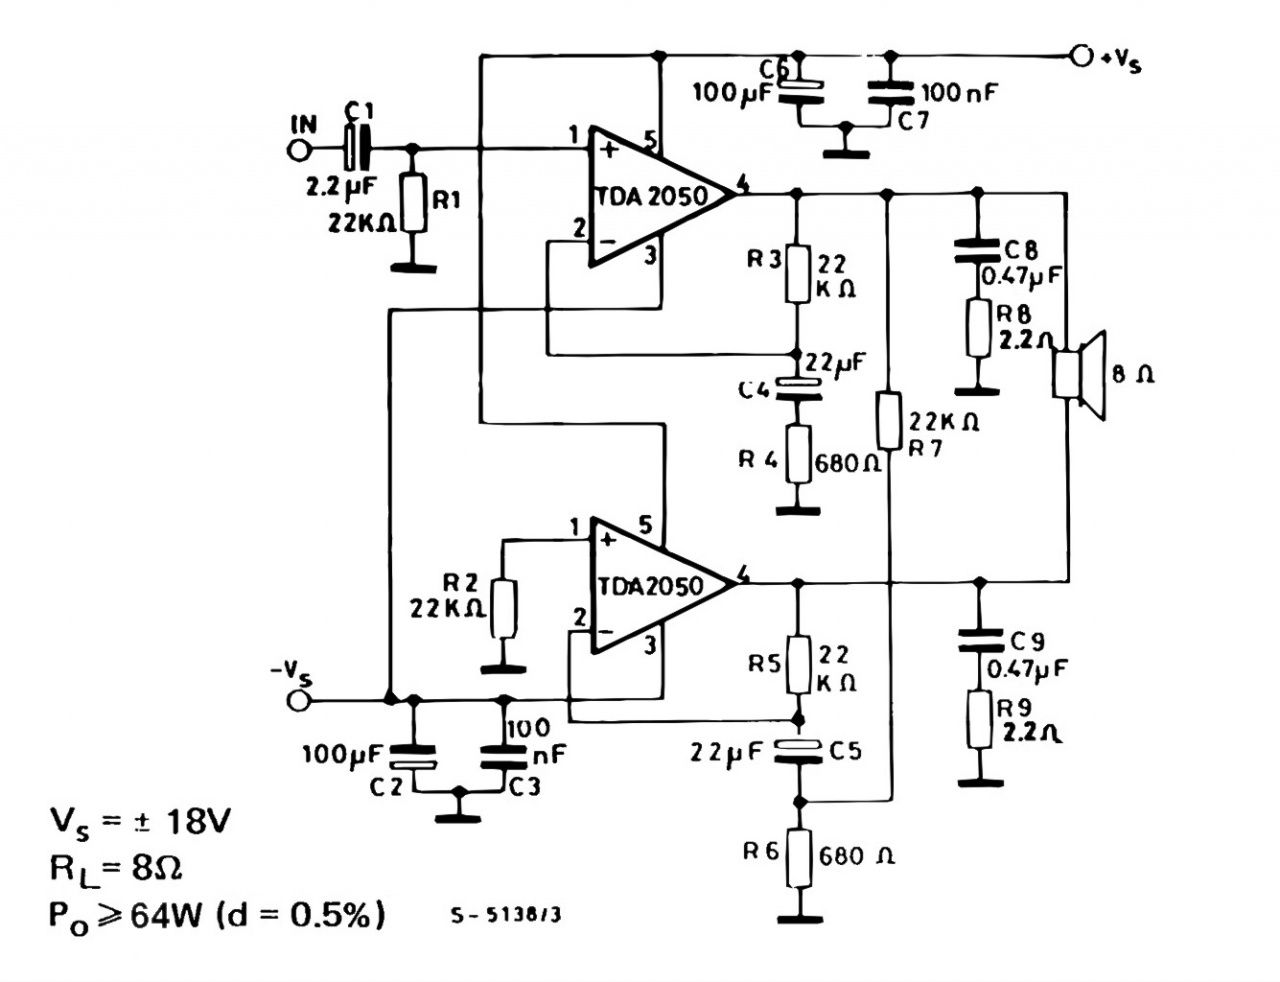 tda 2050 simple amp circuit bridge